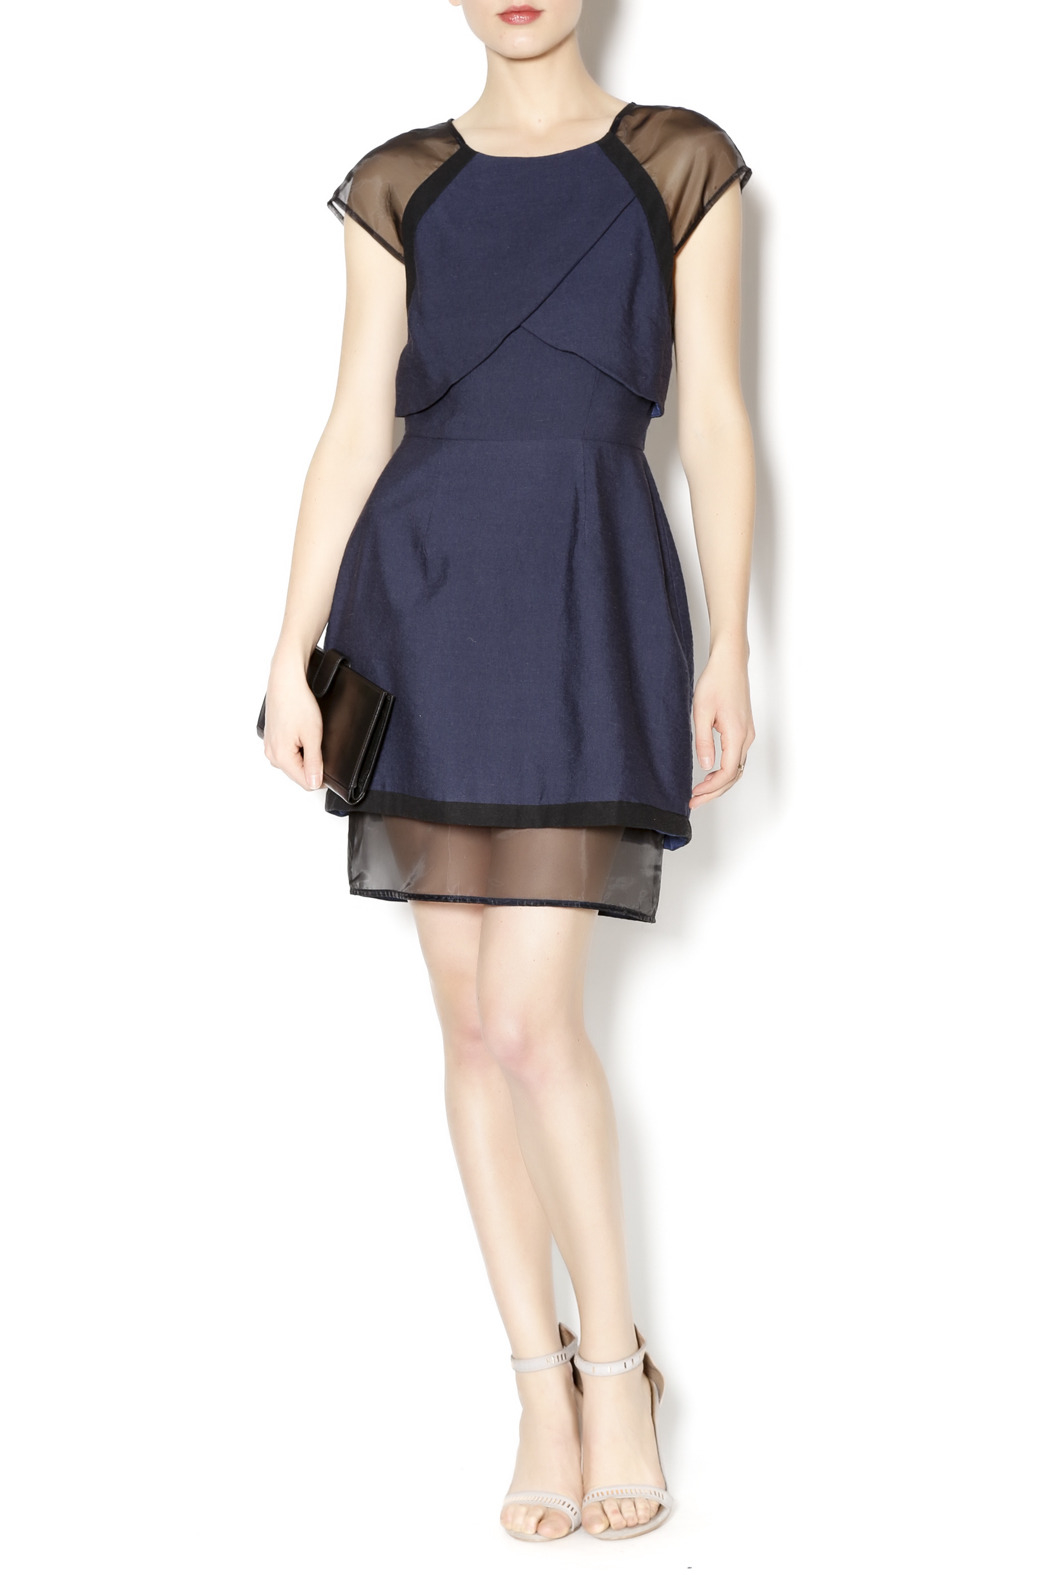 C/MEO COLLECTIVE Navy and Sheer Dress - Front Full Image